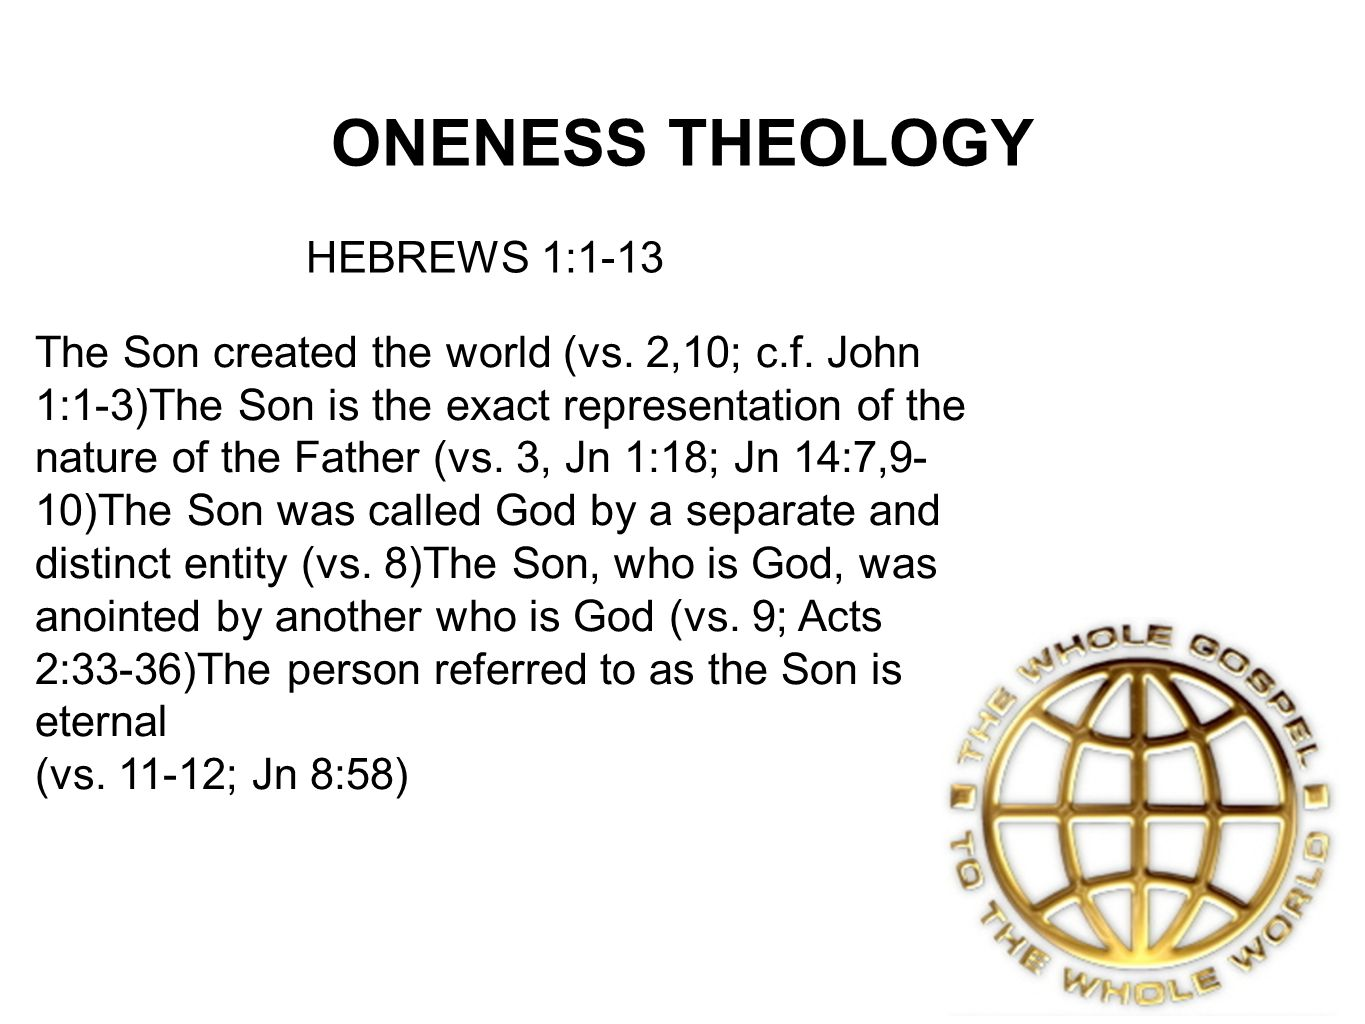 ONENESS THEOLOGY HEBREWS 1:1-13